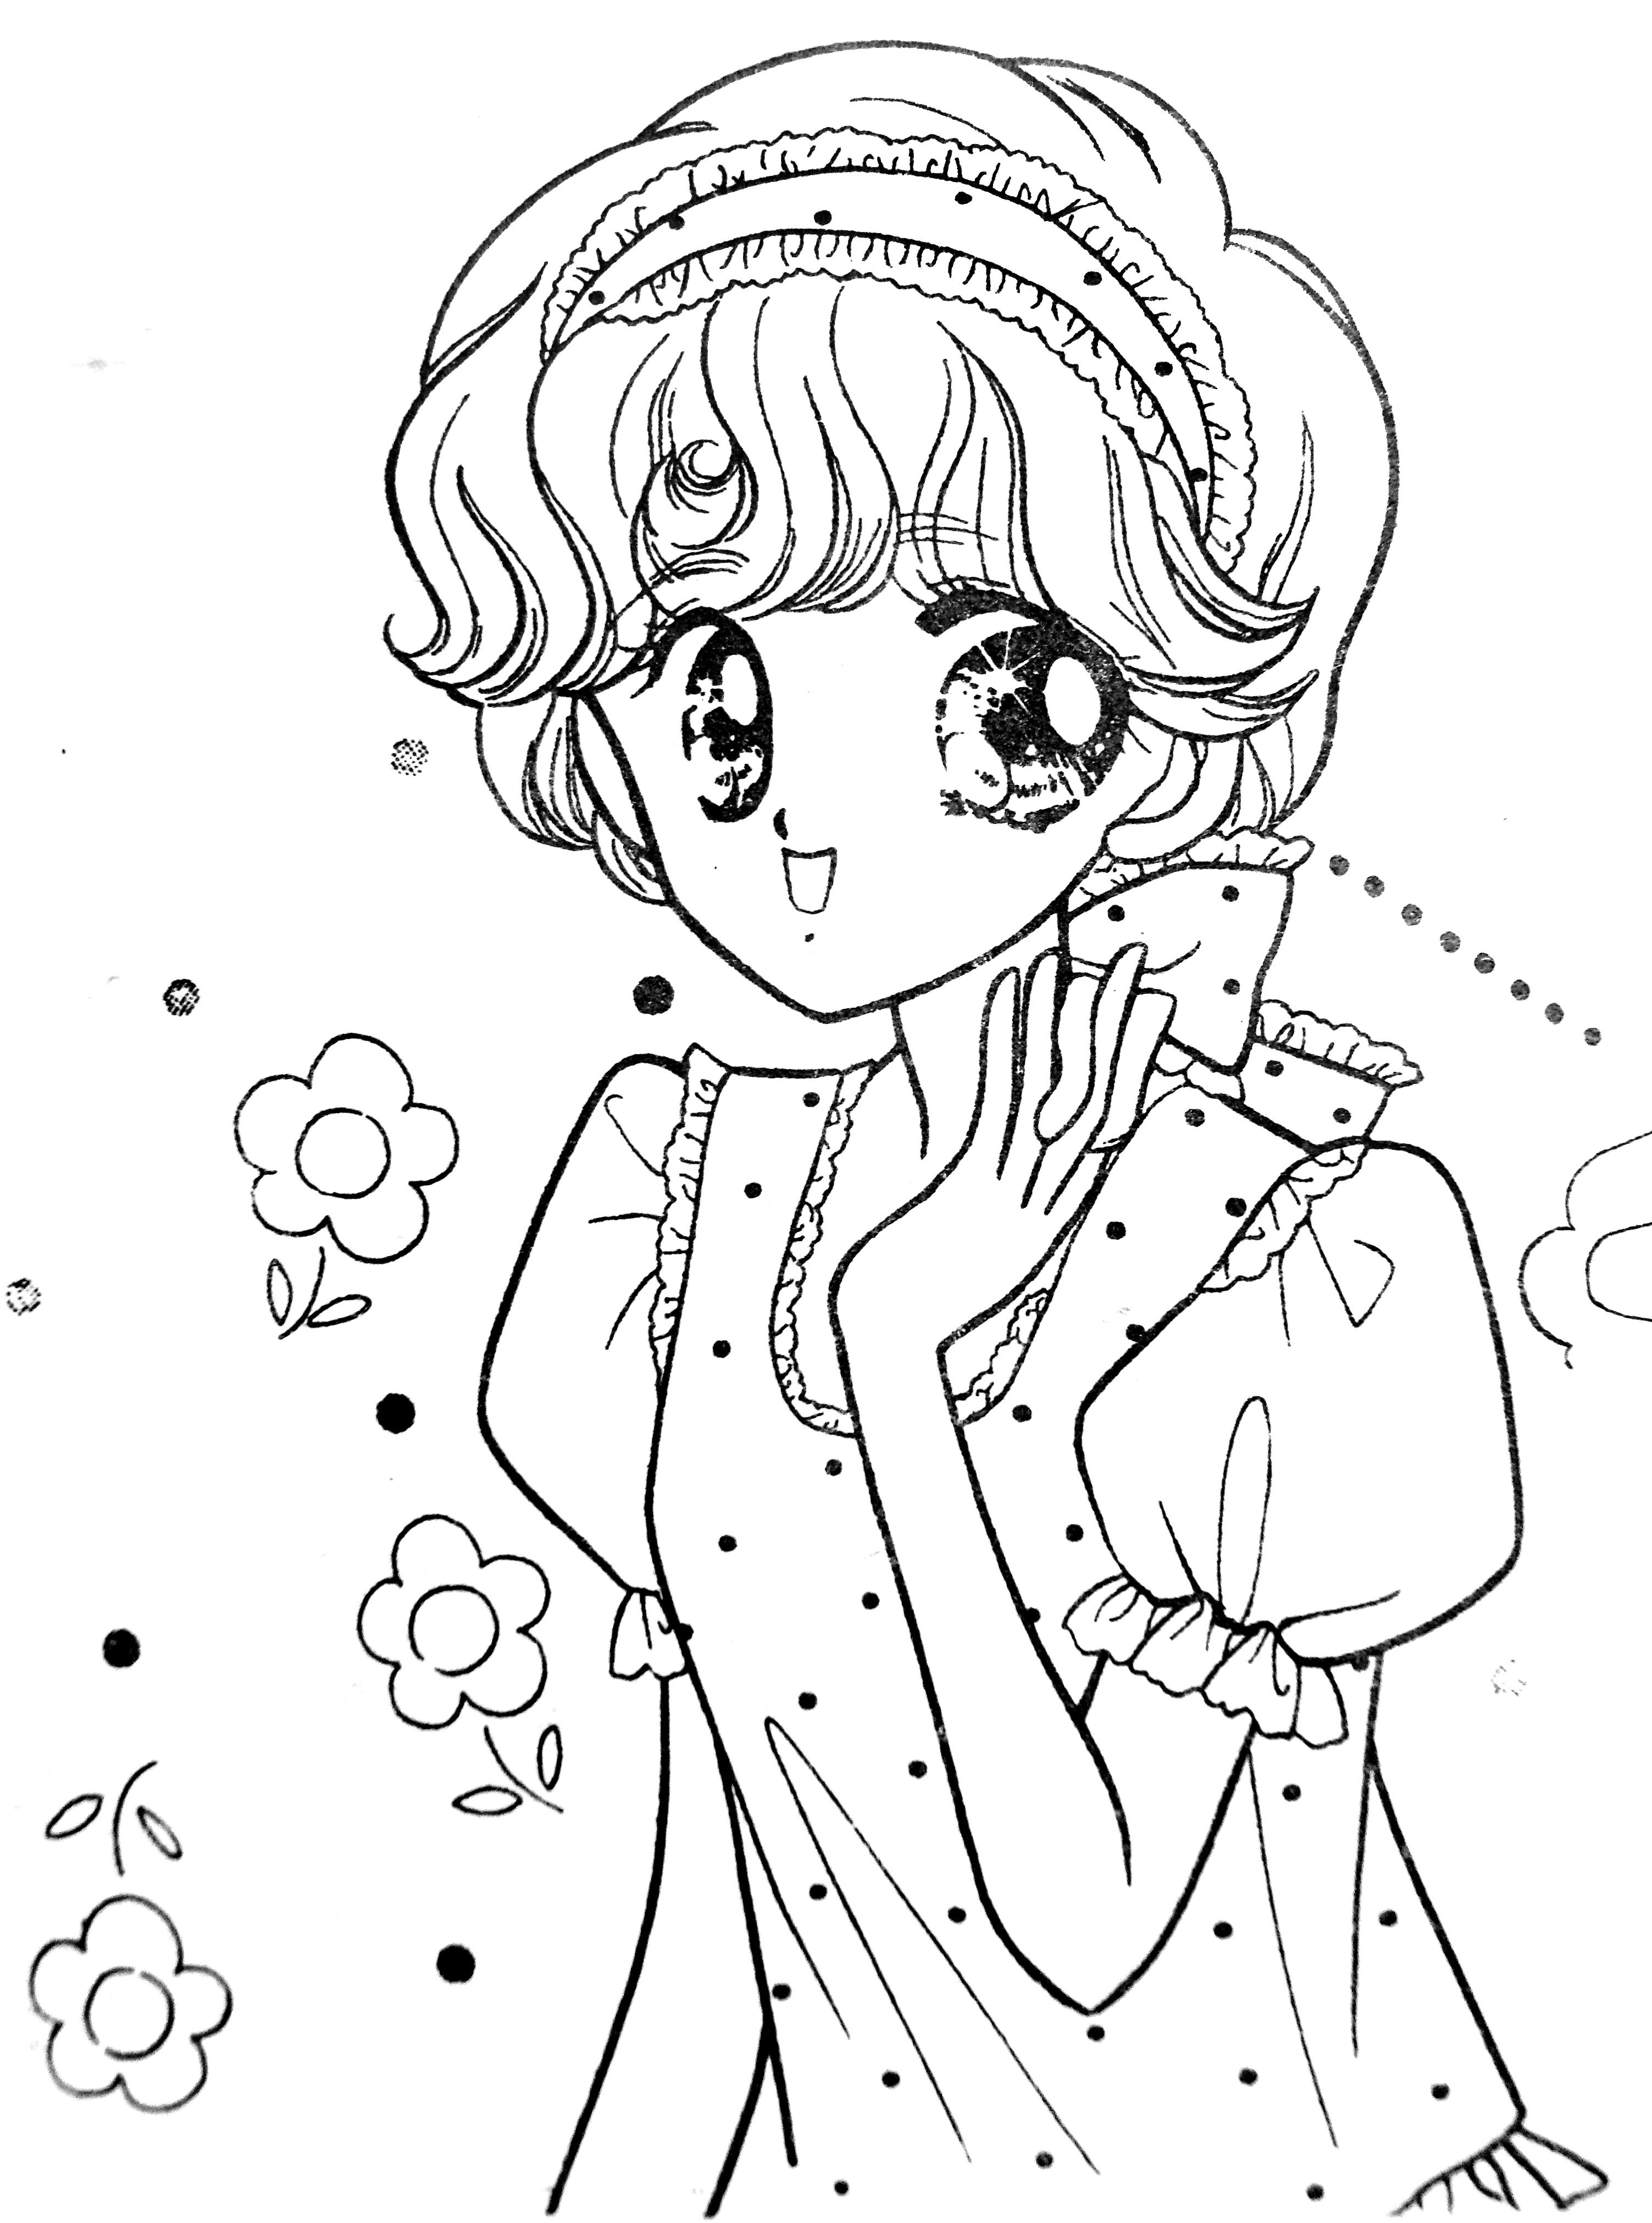 Pin By Michelle On Anime Coloring Pages Vintage Coloring Books Coloring Books Flower Coloring Pages [ 4044 x 3006 Pixel ]